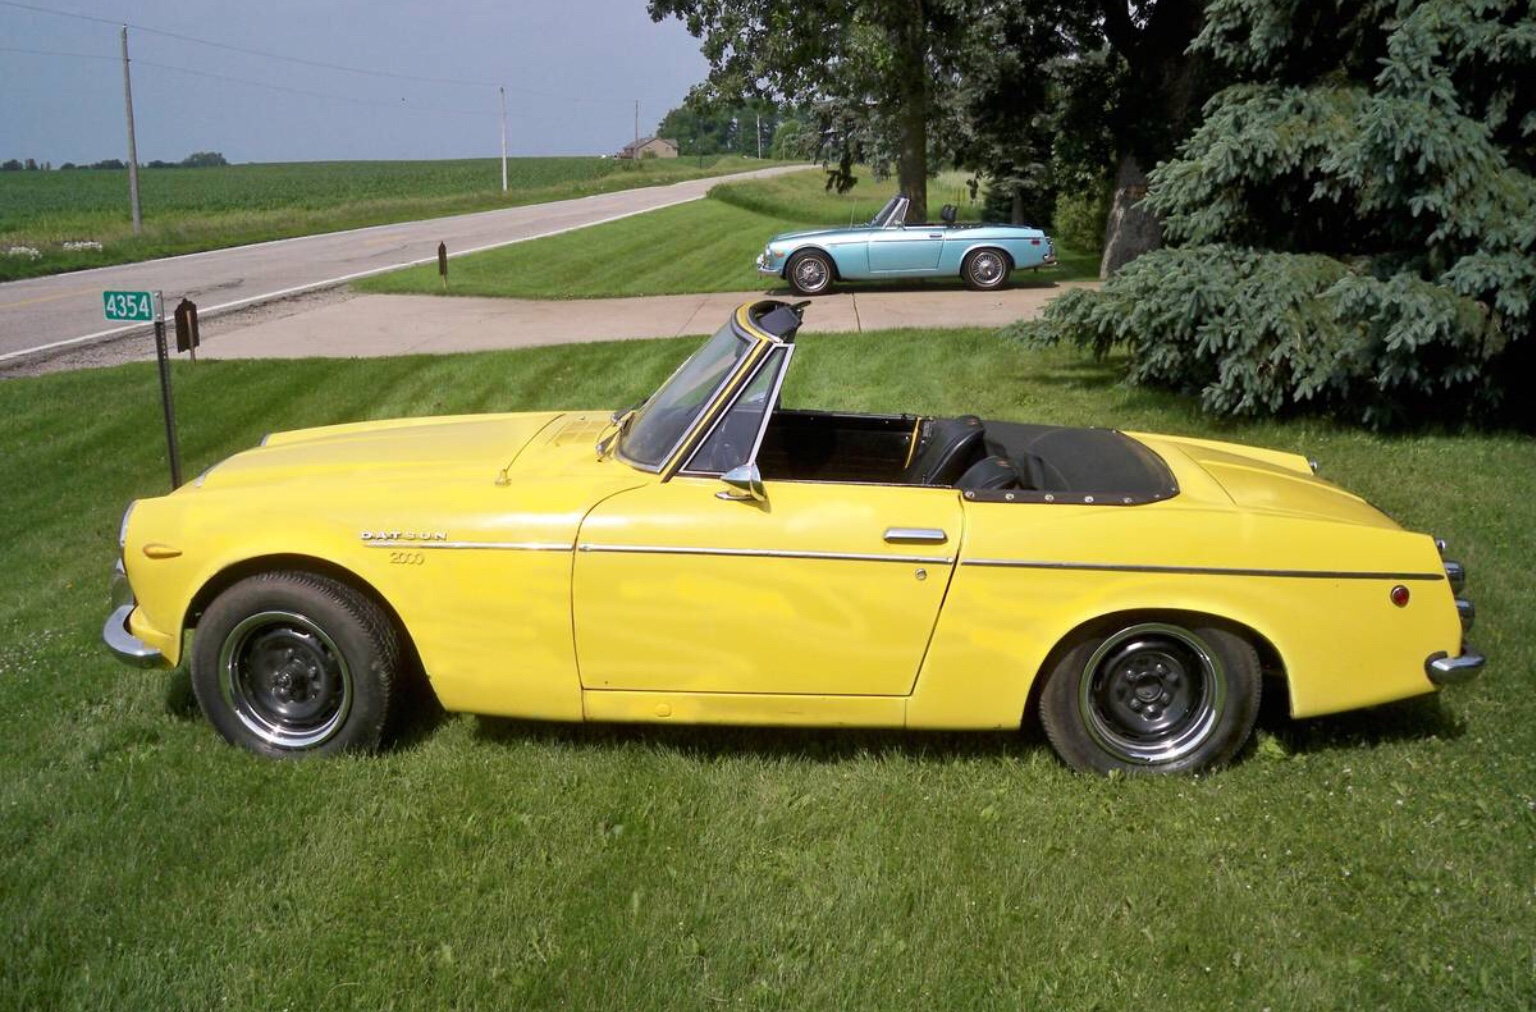 Oddball Cars For Sale Cl Ebay And The Like Page 152 Mx 5 Miata Forum